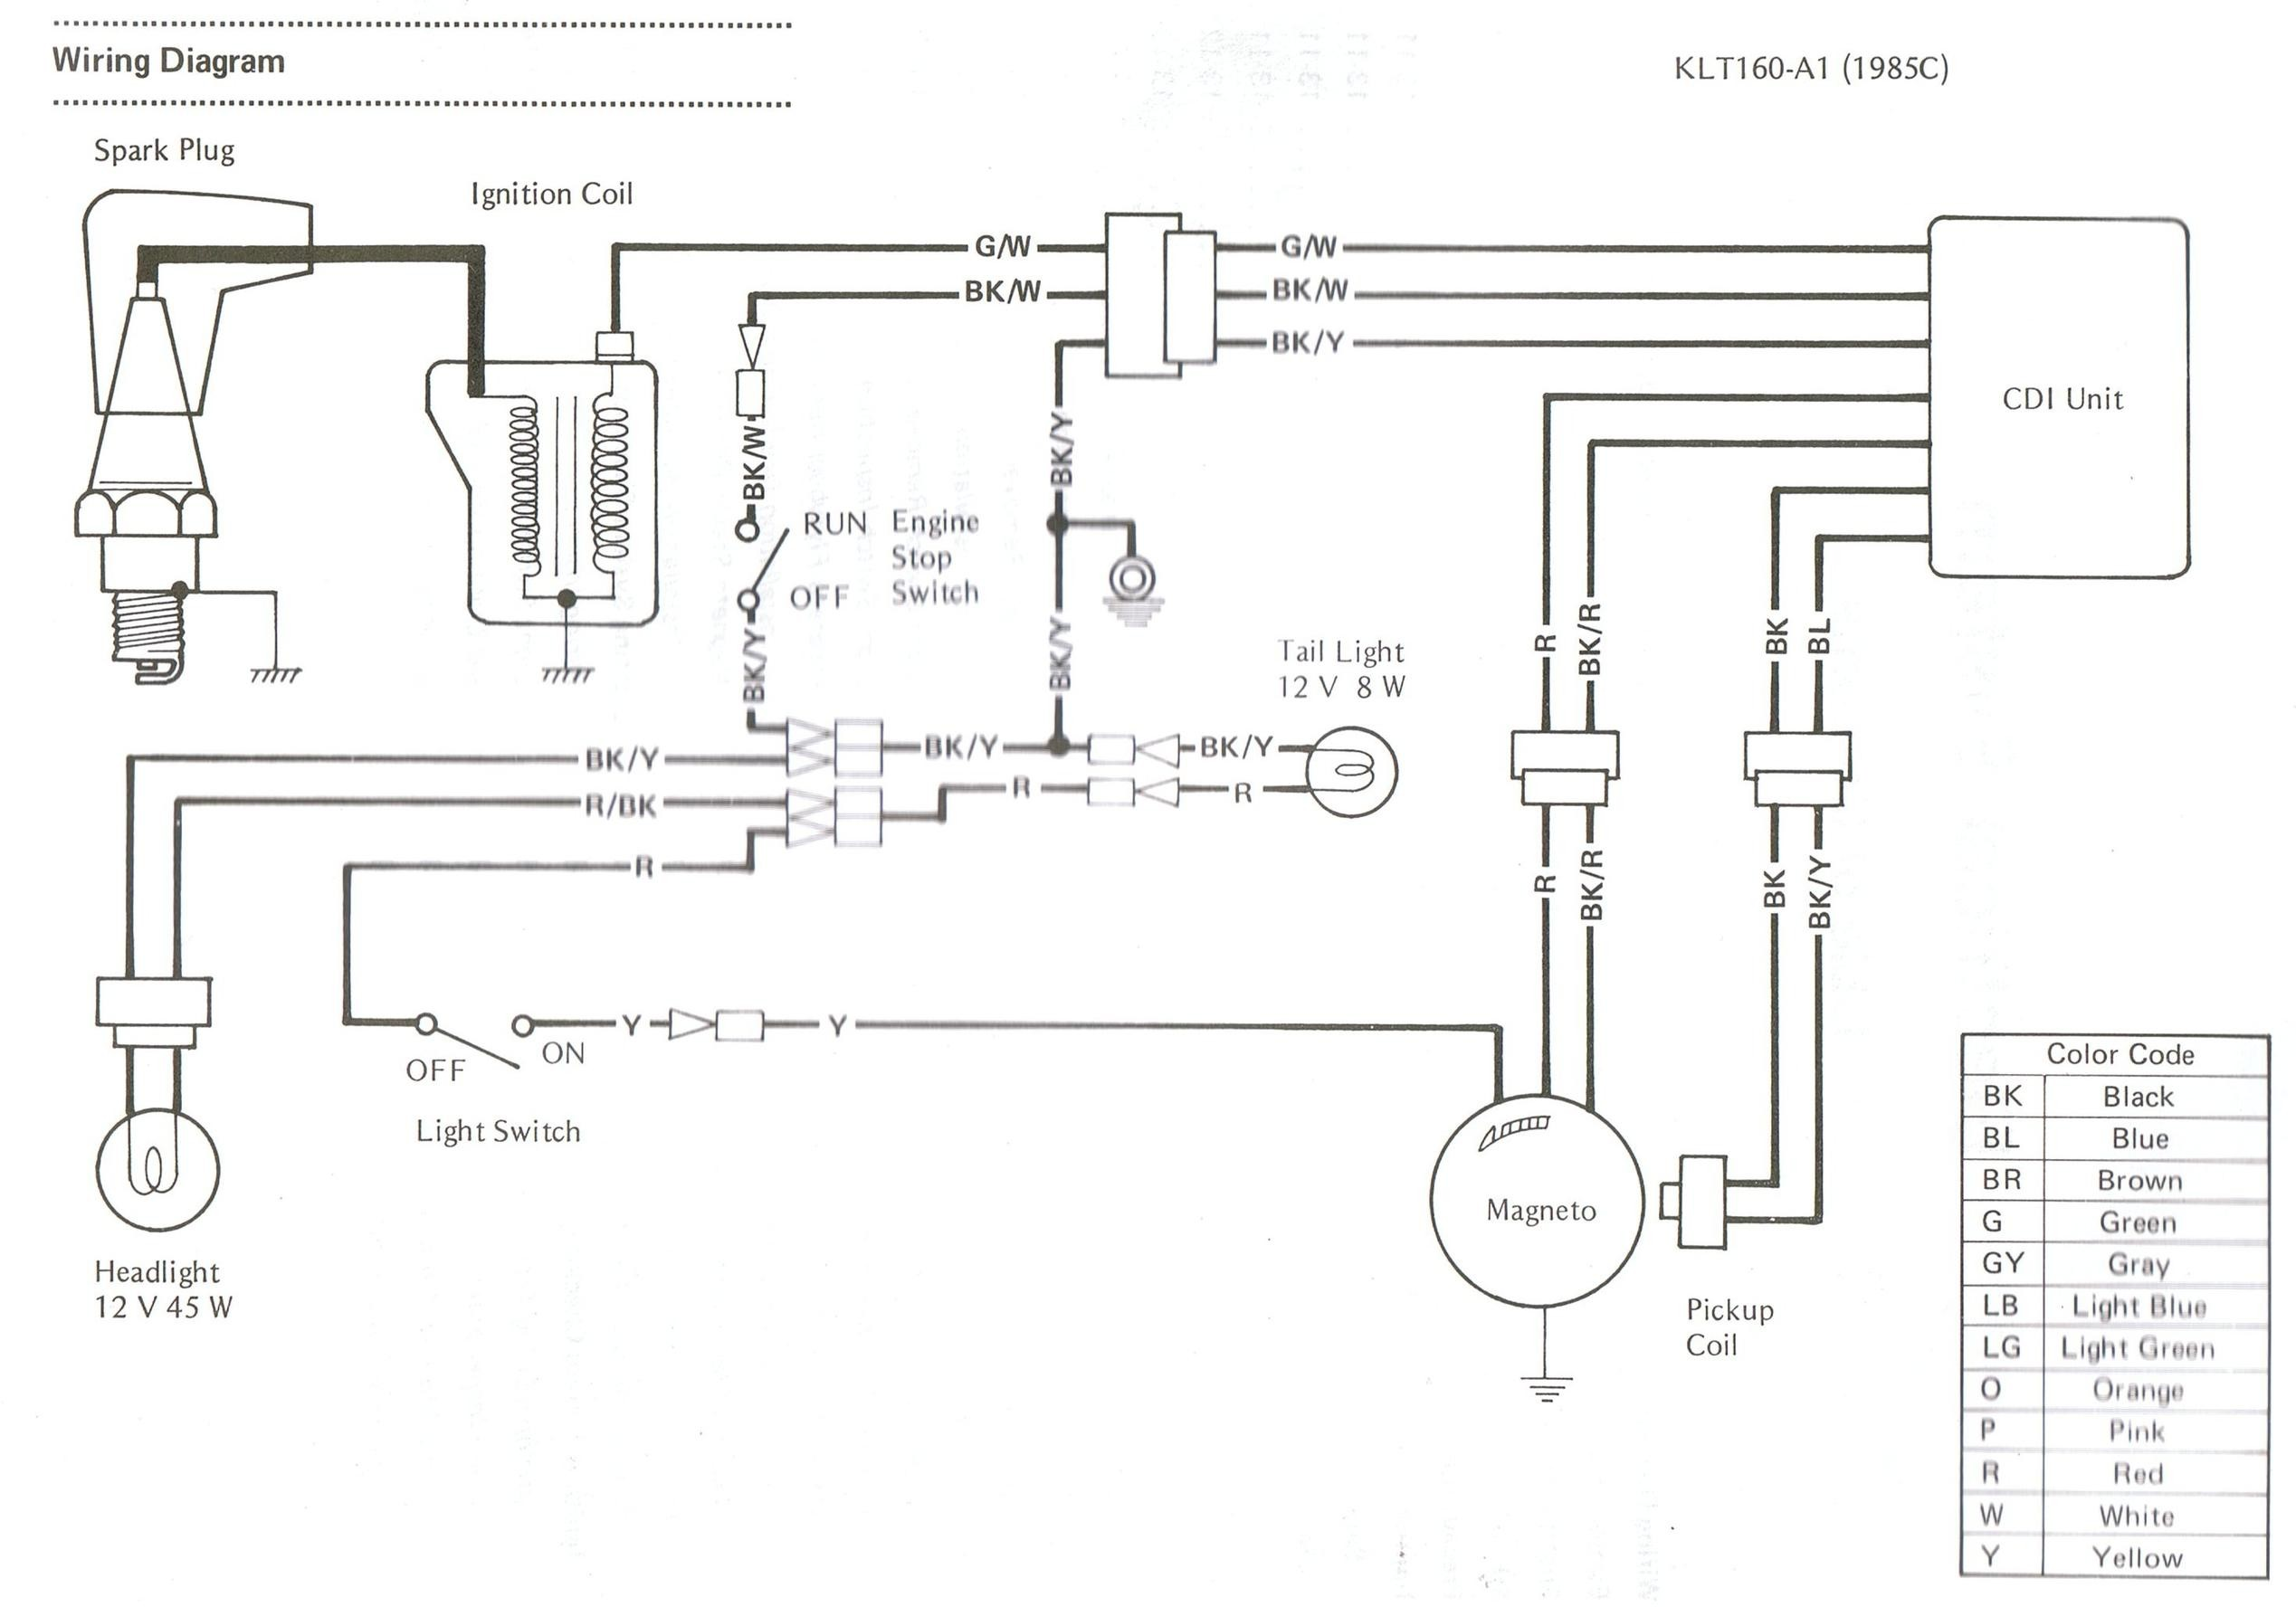 Wiring Diagram 1985 Alfa Romeo Spider Get Free Image About Engine 1984 Explained Diagrams Rh Dmdelectro Co